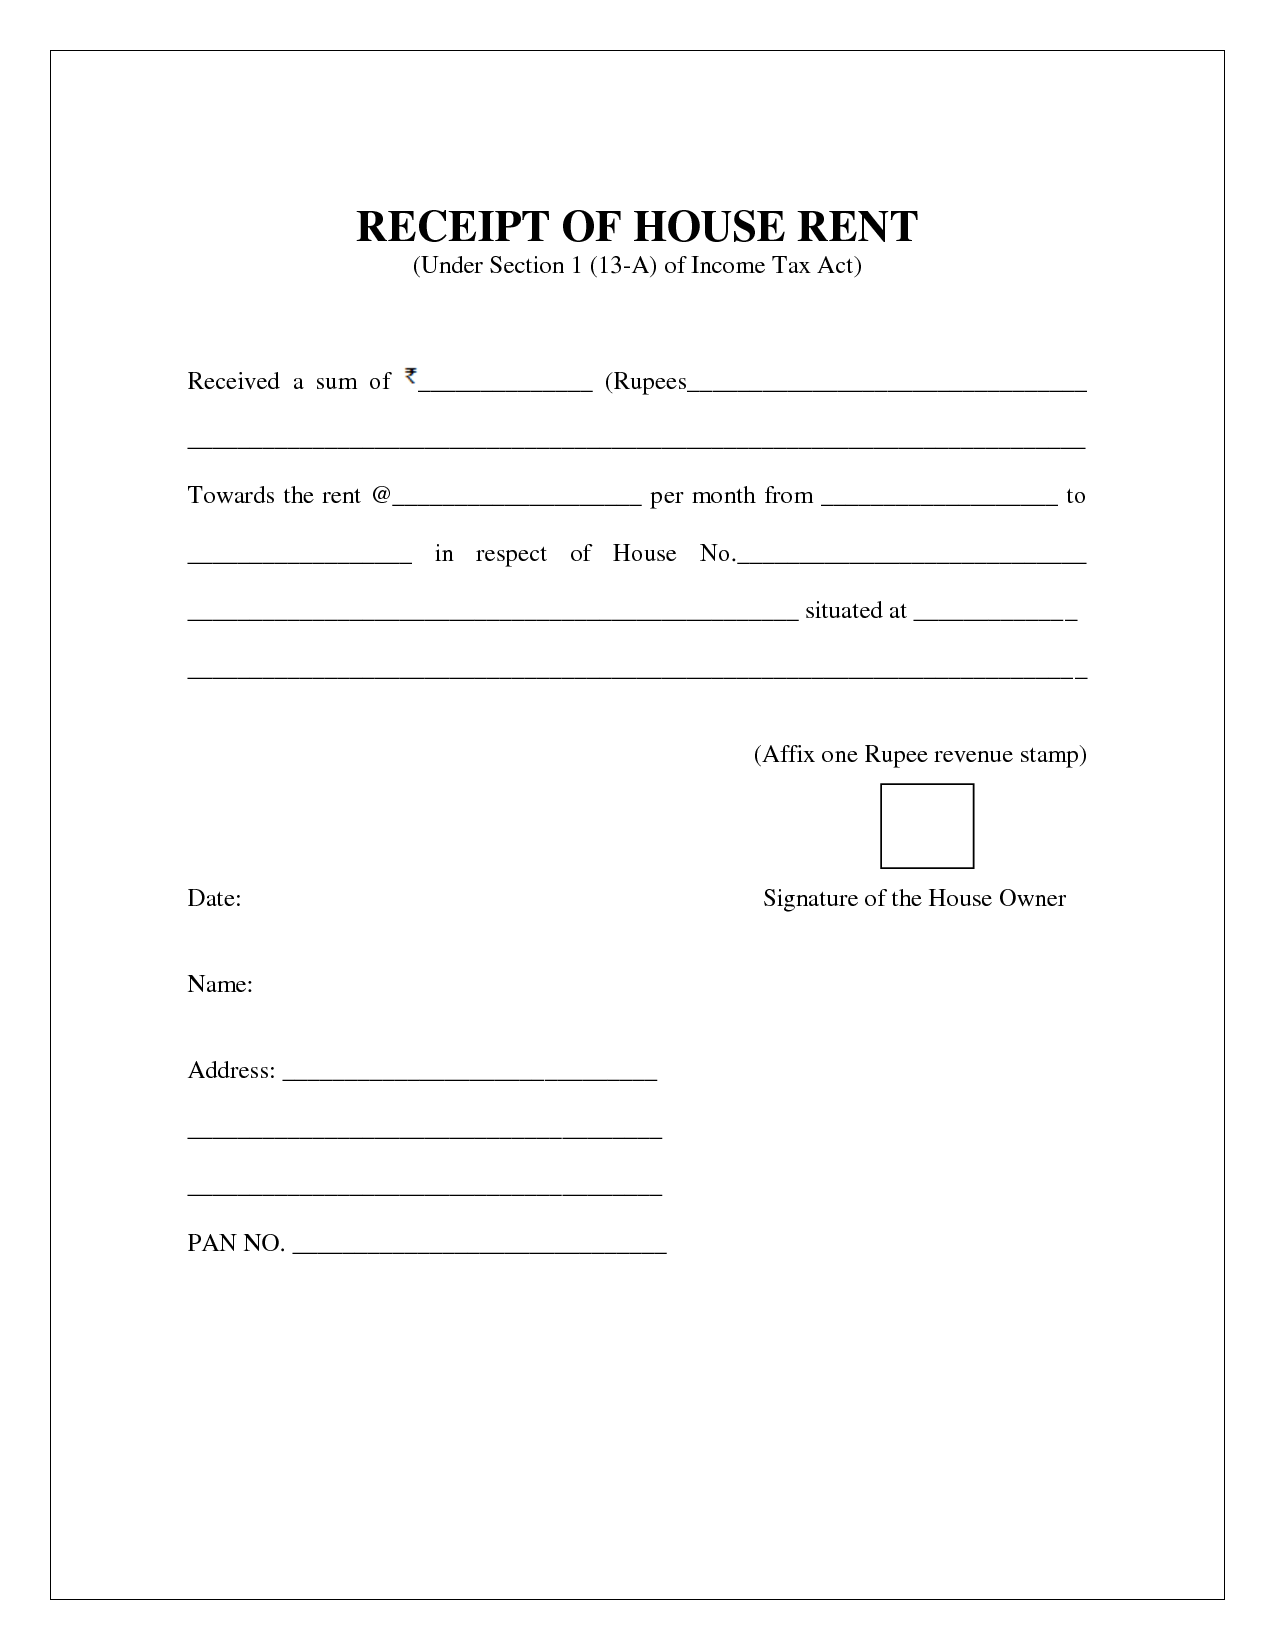 doc house rent slip rent slip format house rent doc12751650 house rent receipt format doc doc12751650 rental house rent slip